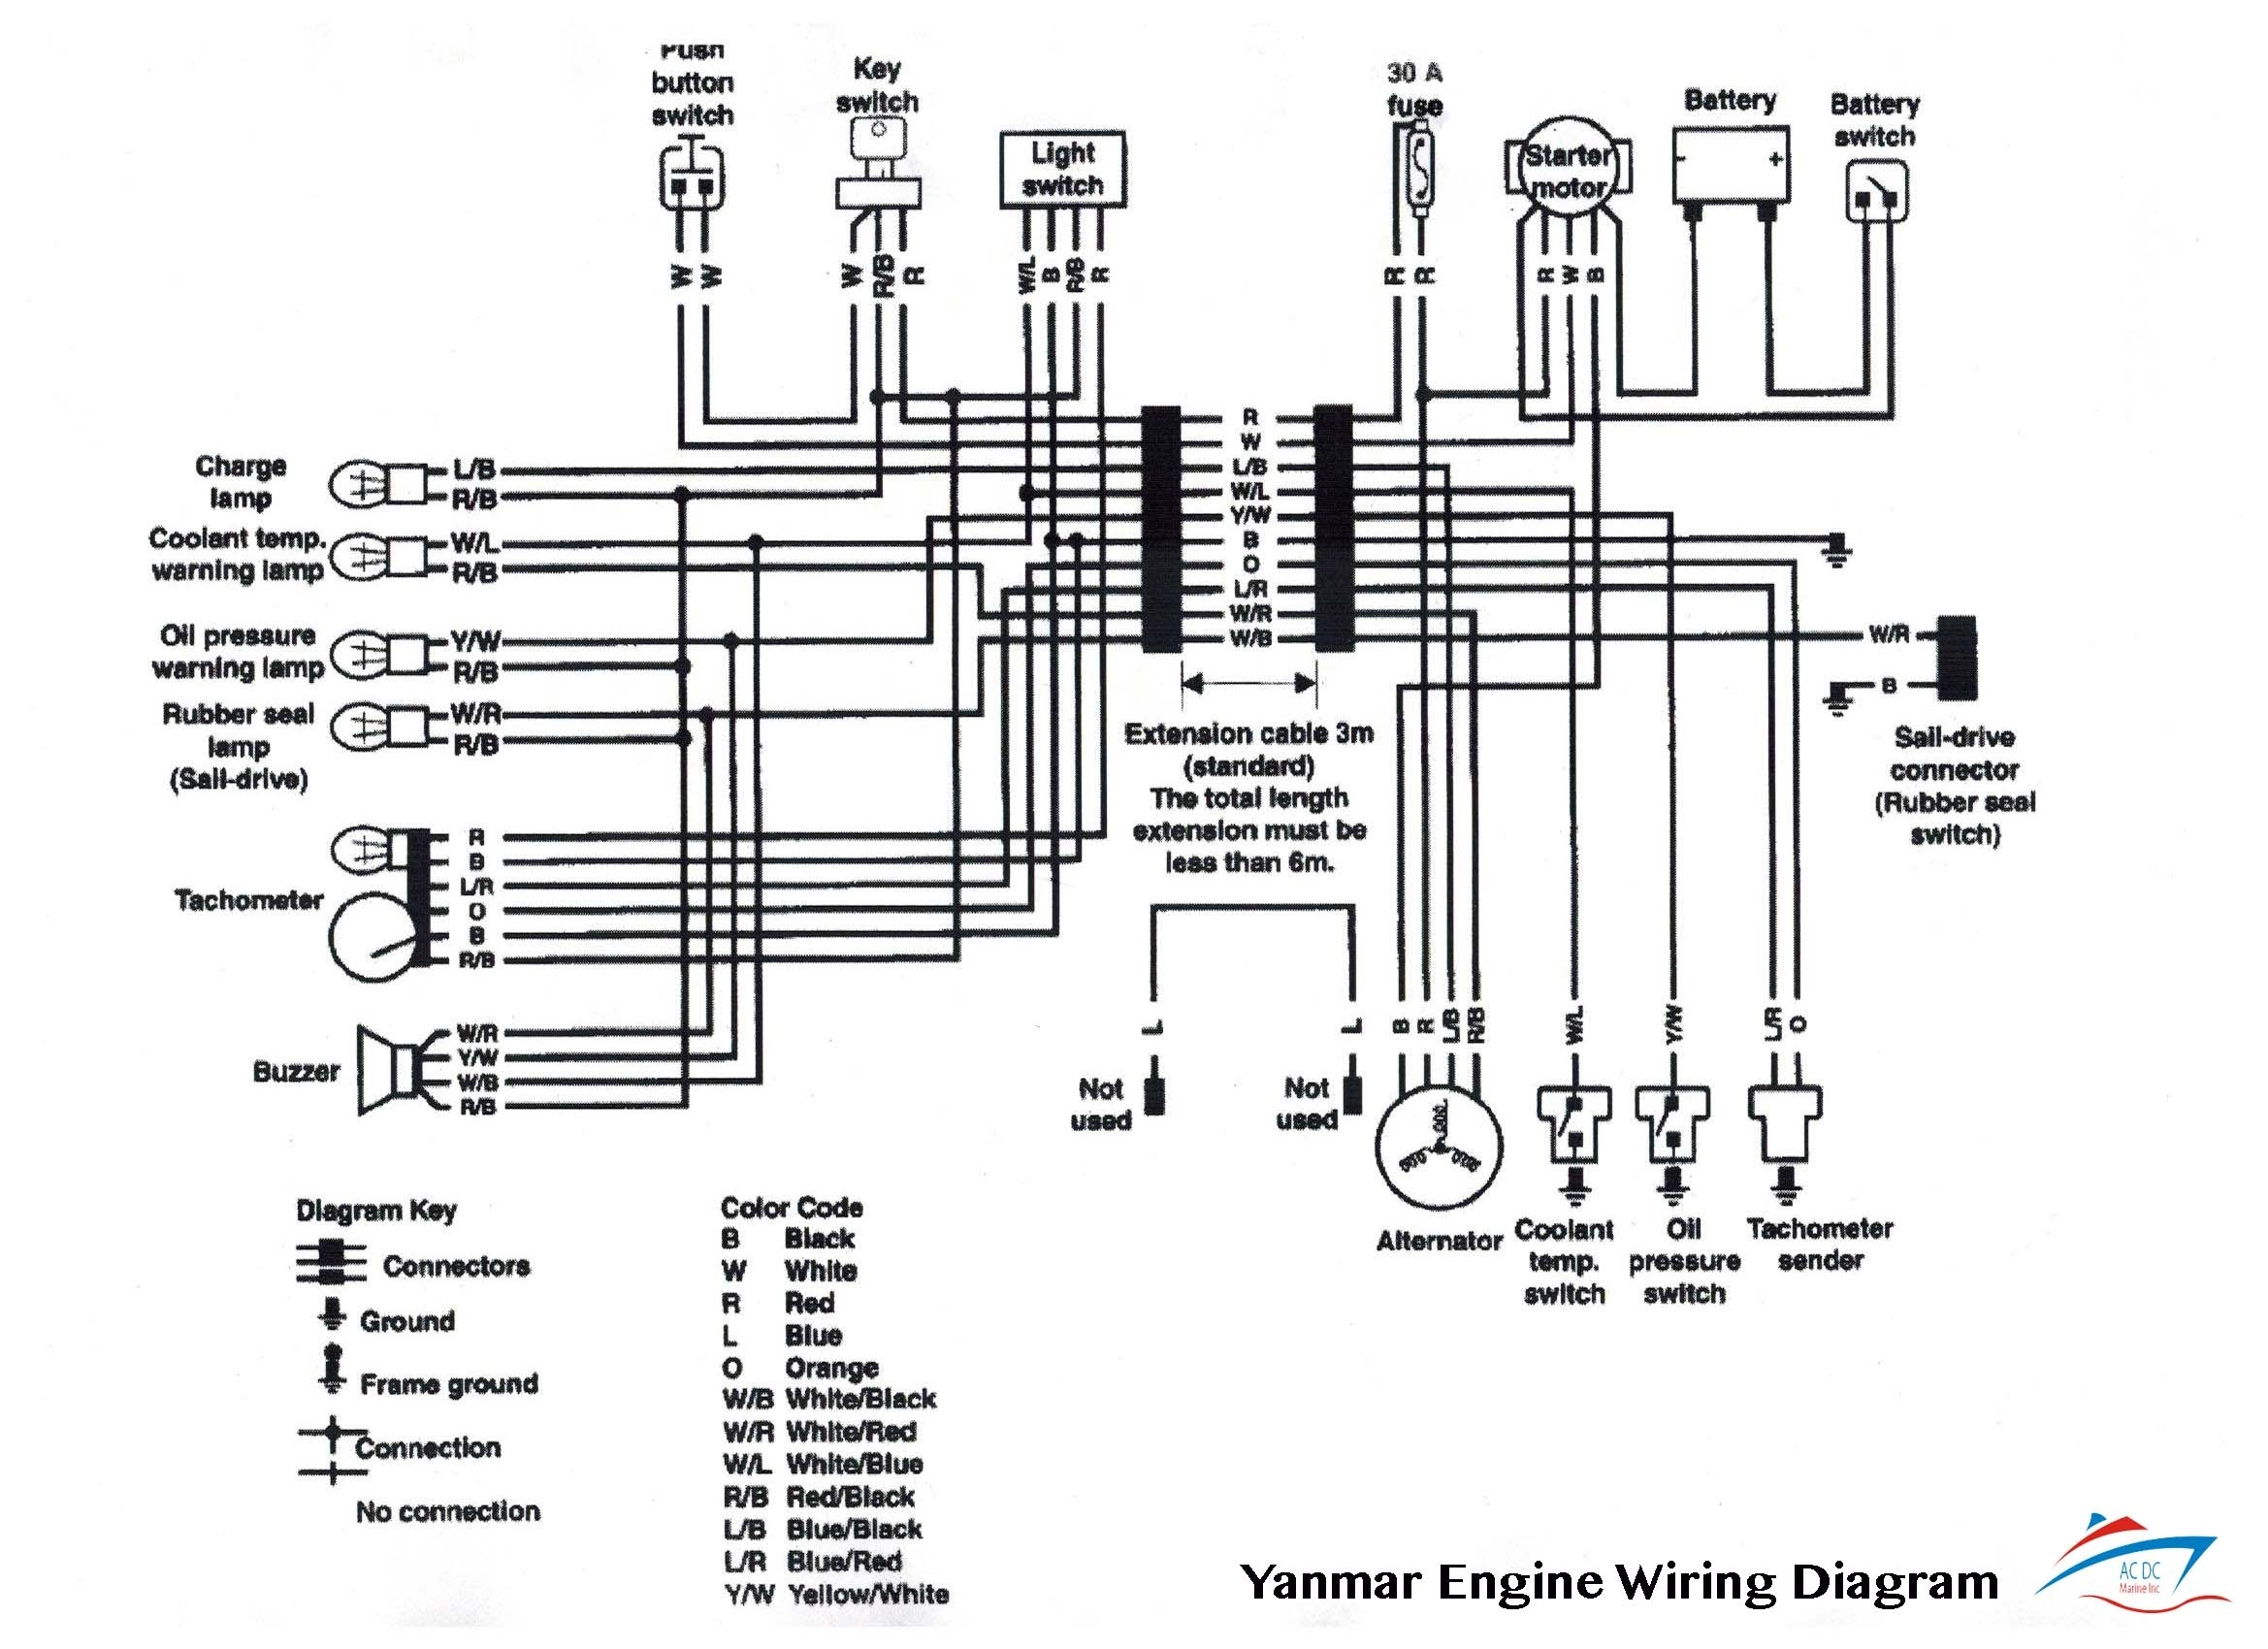 key west boat parts wiring diagrams